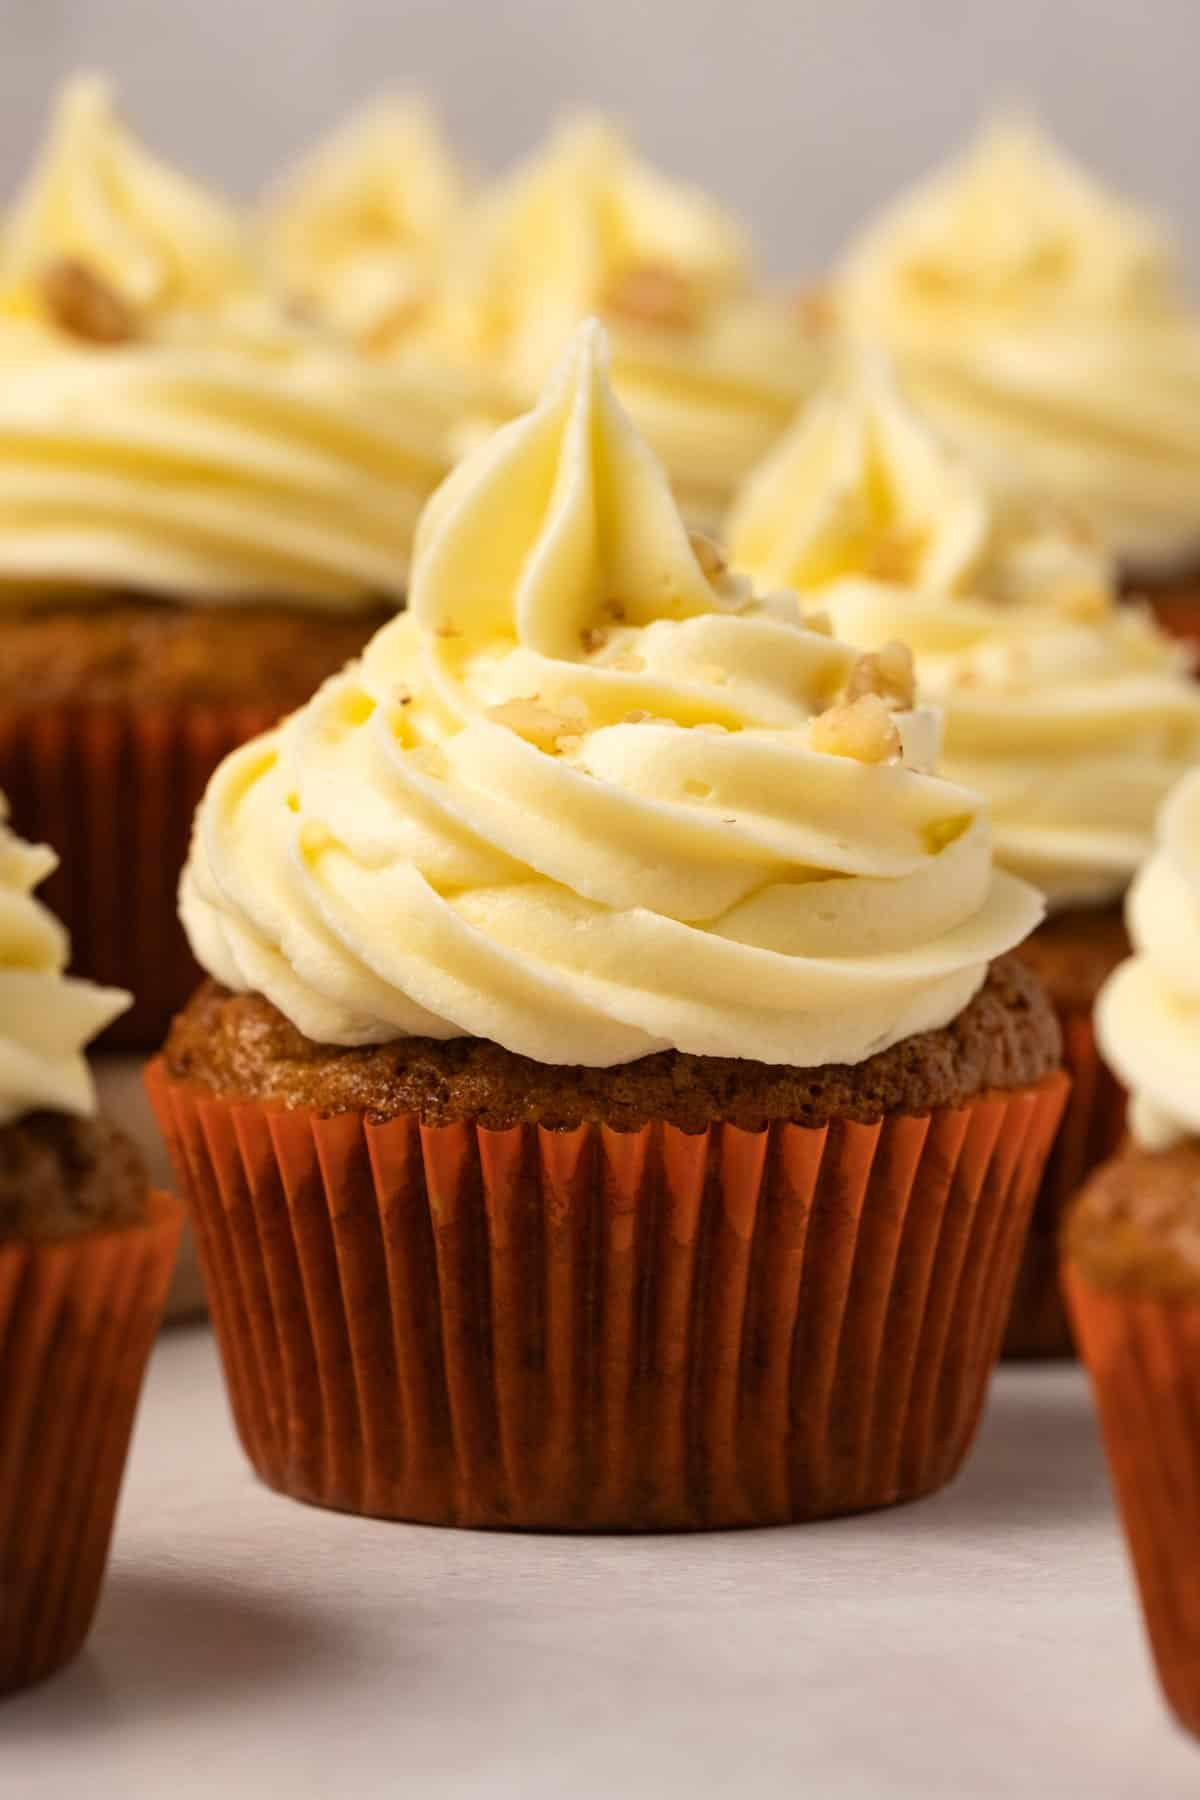 Cupcakes topped with piped frosting and chopped nuts.